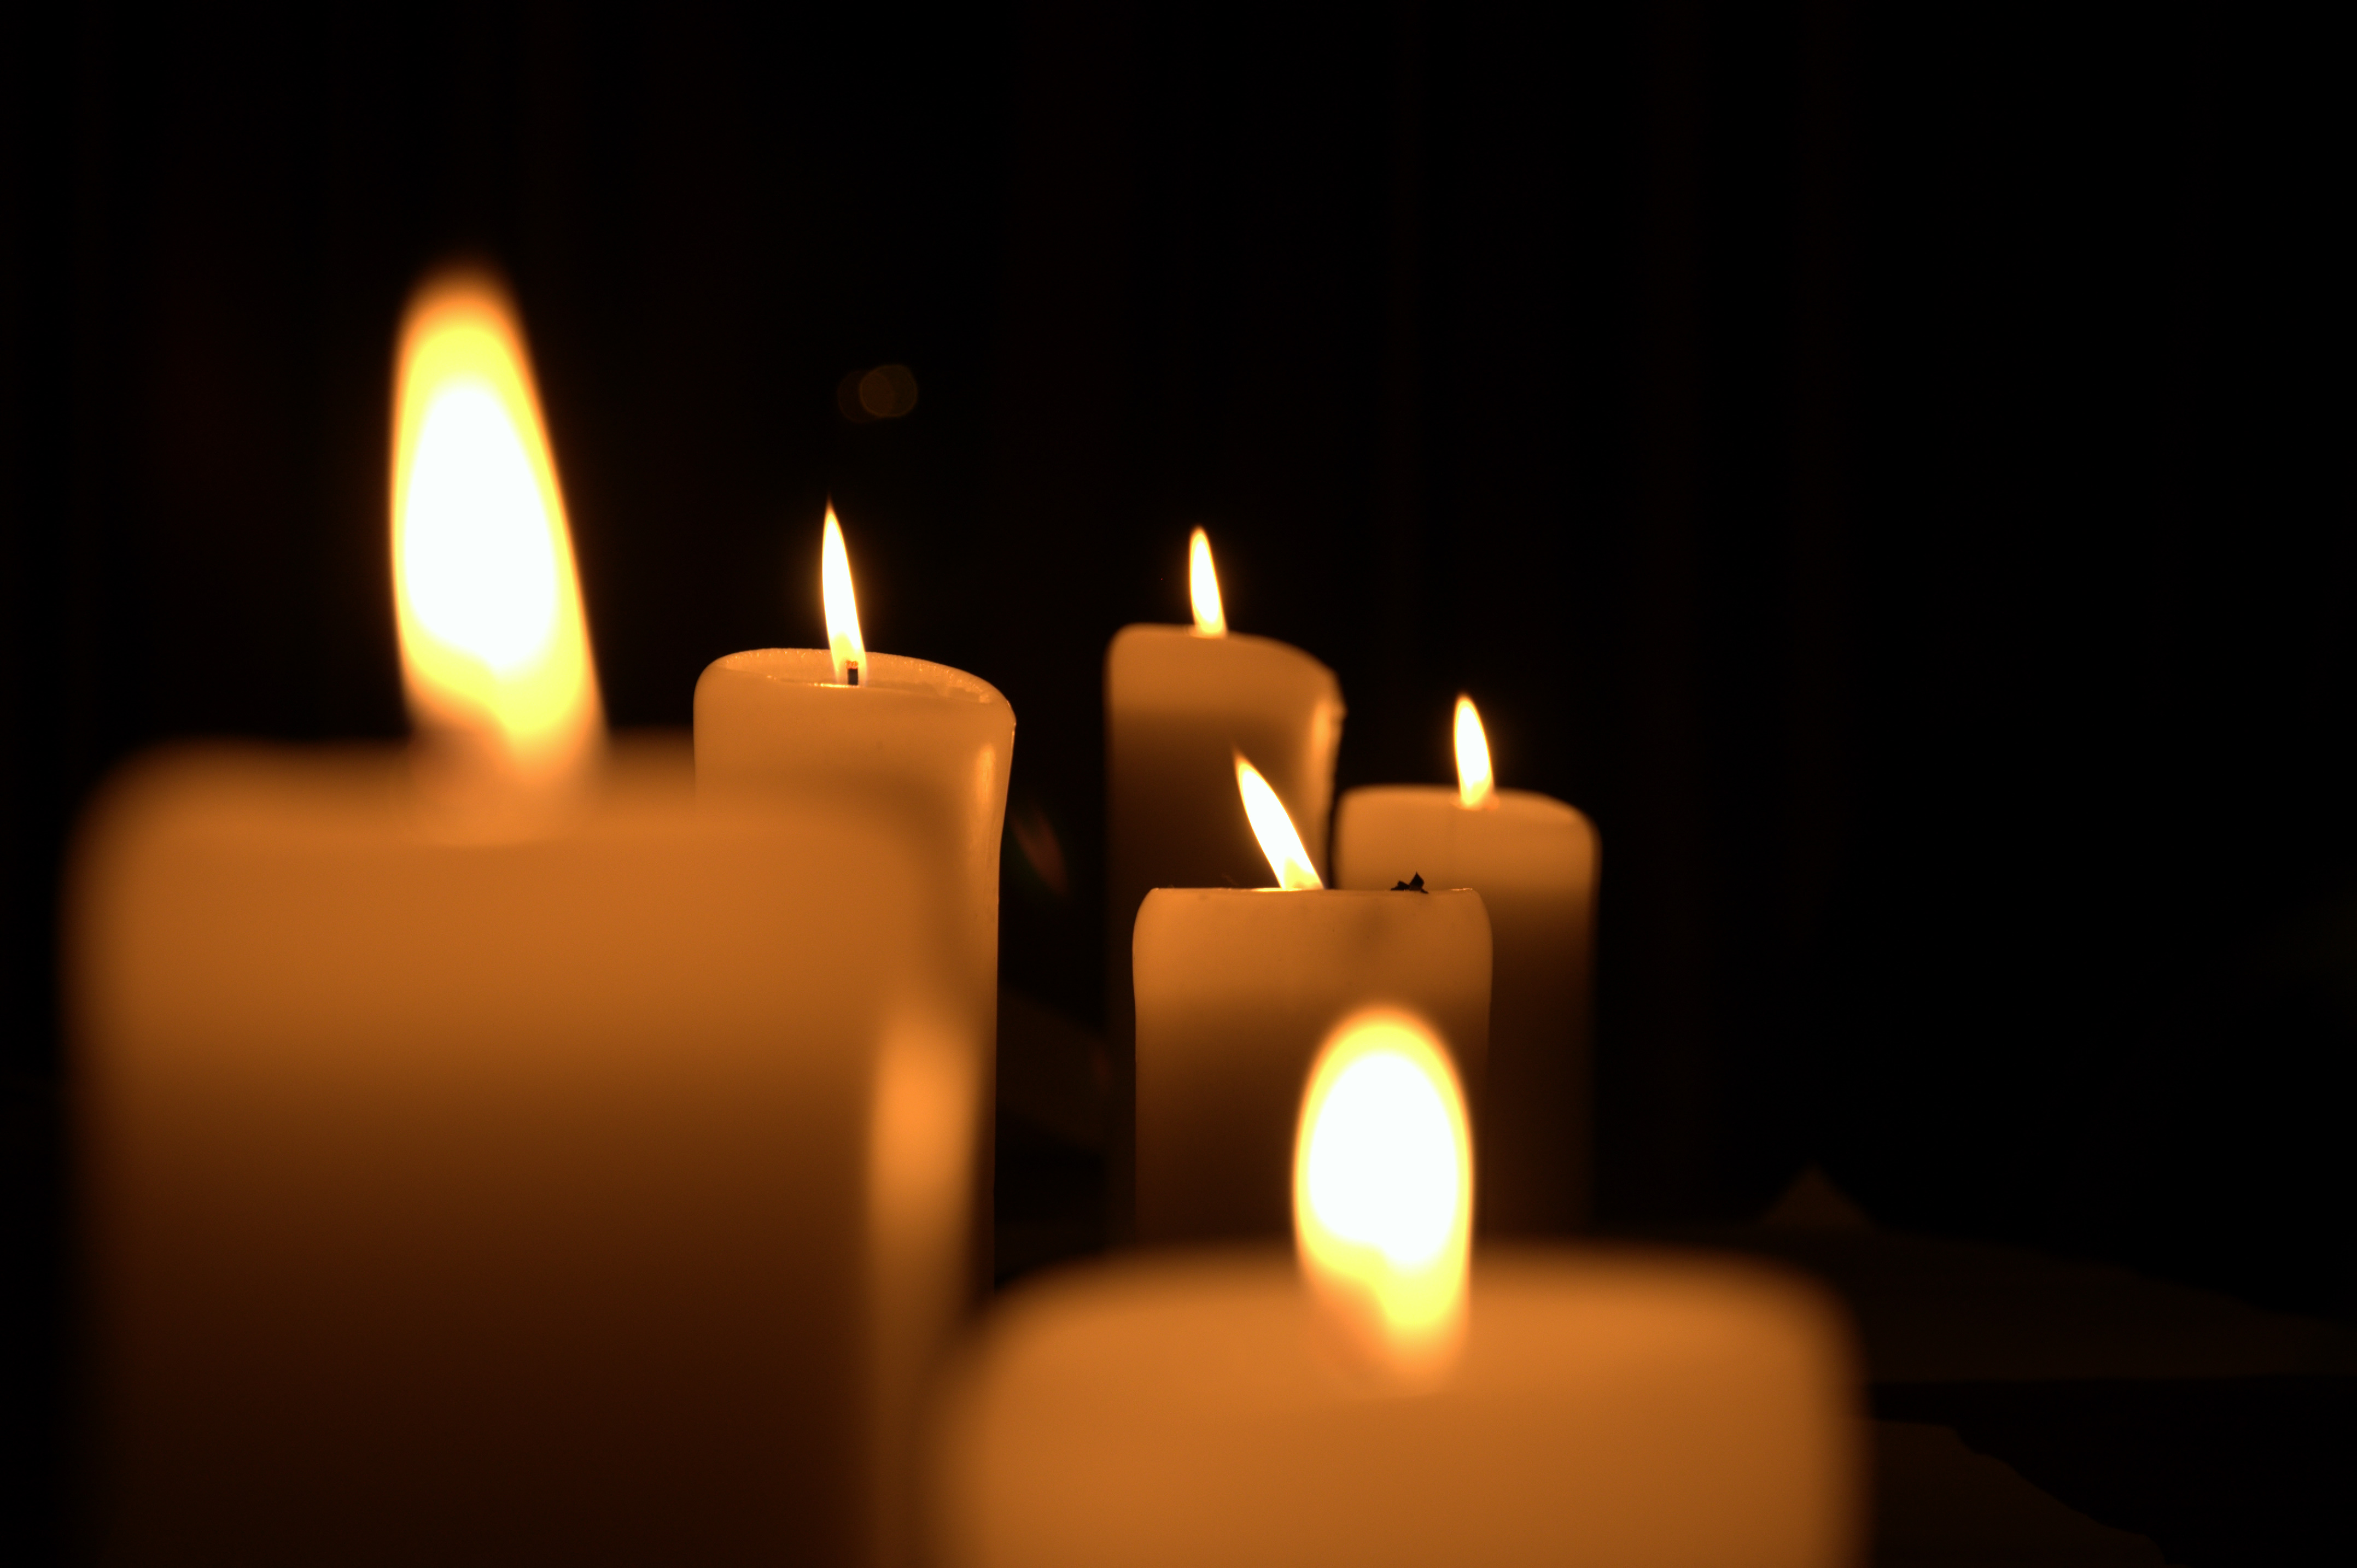 146310 Screensavers and Wallpapers Candles for phone. Download Fire, Candles, Dark, Shine, Light, Darkness pictures for free